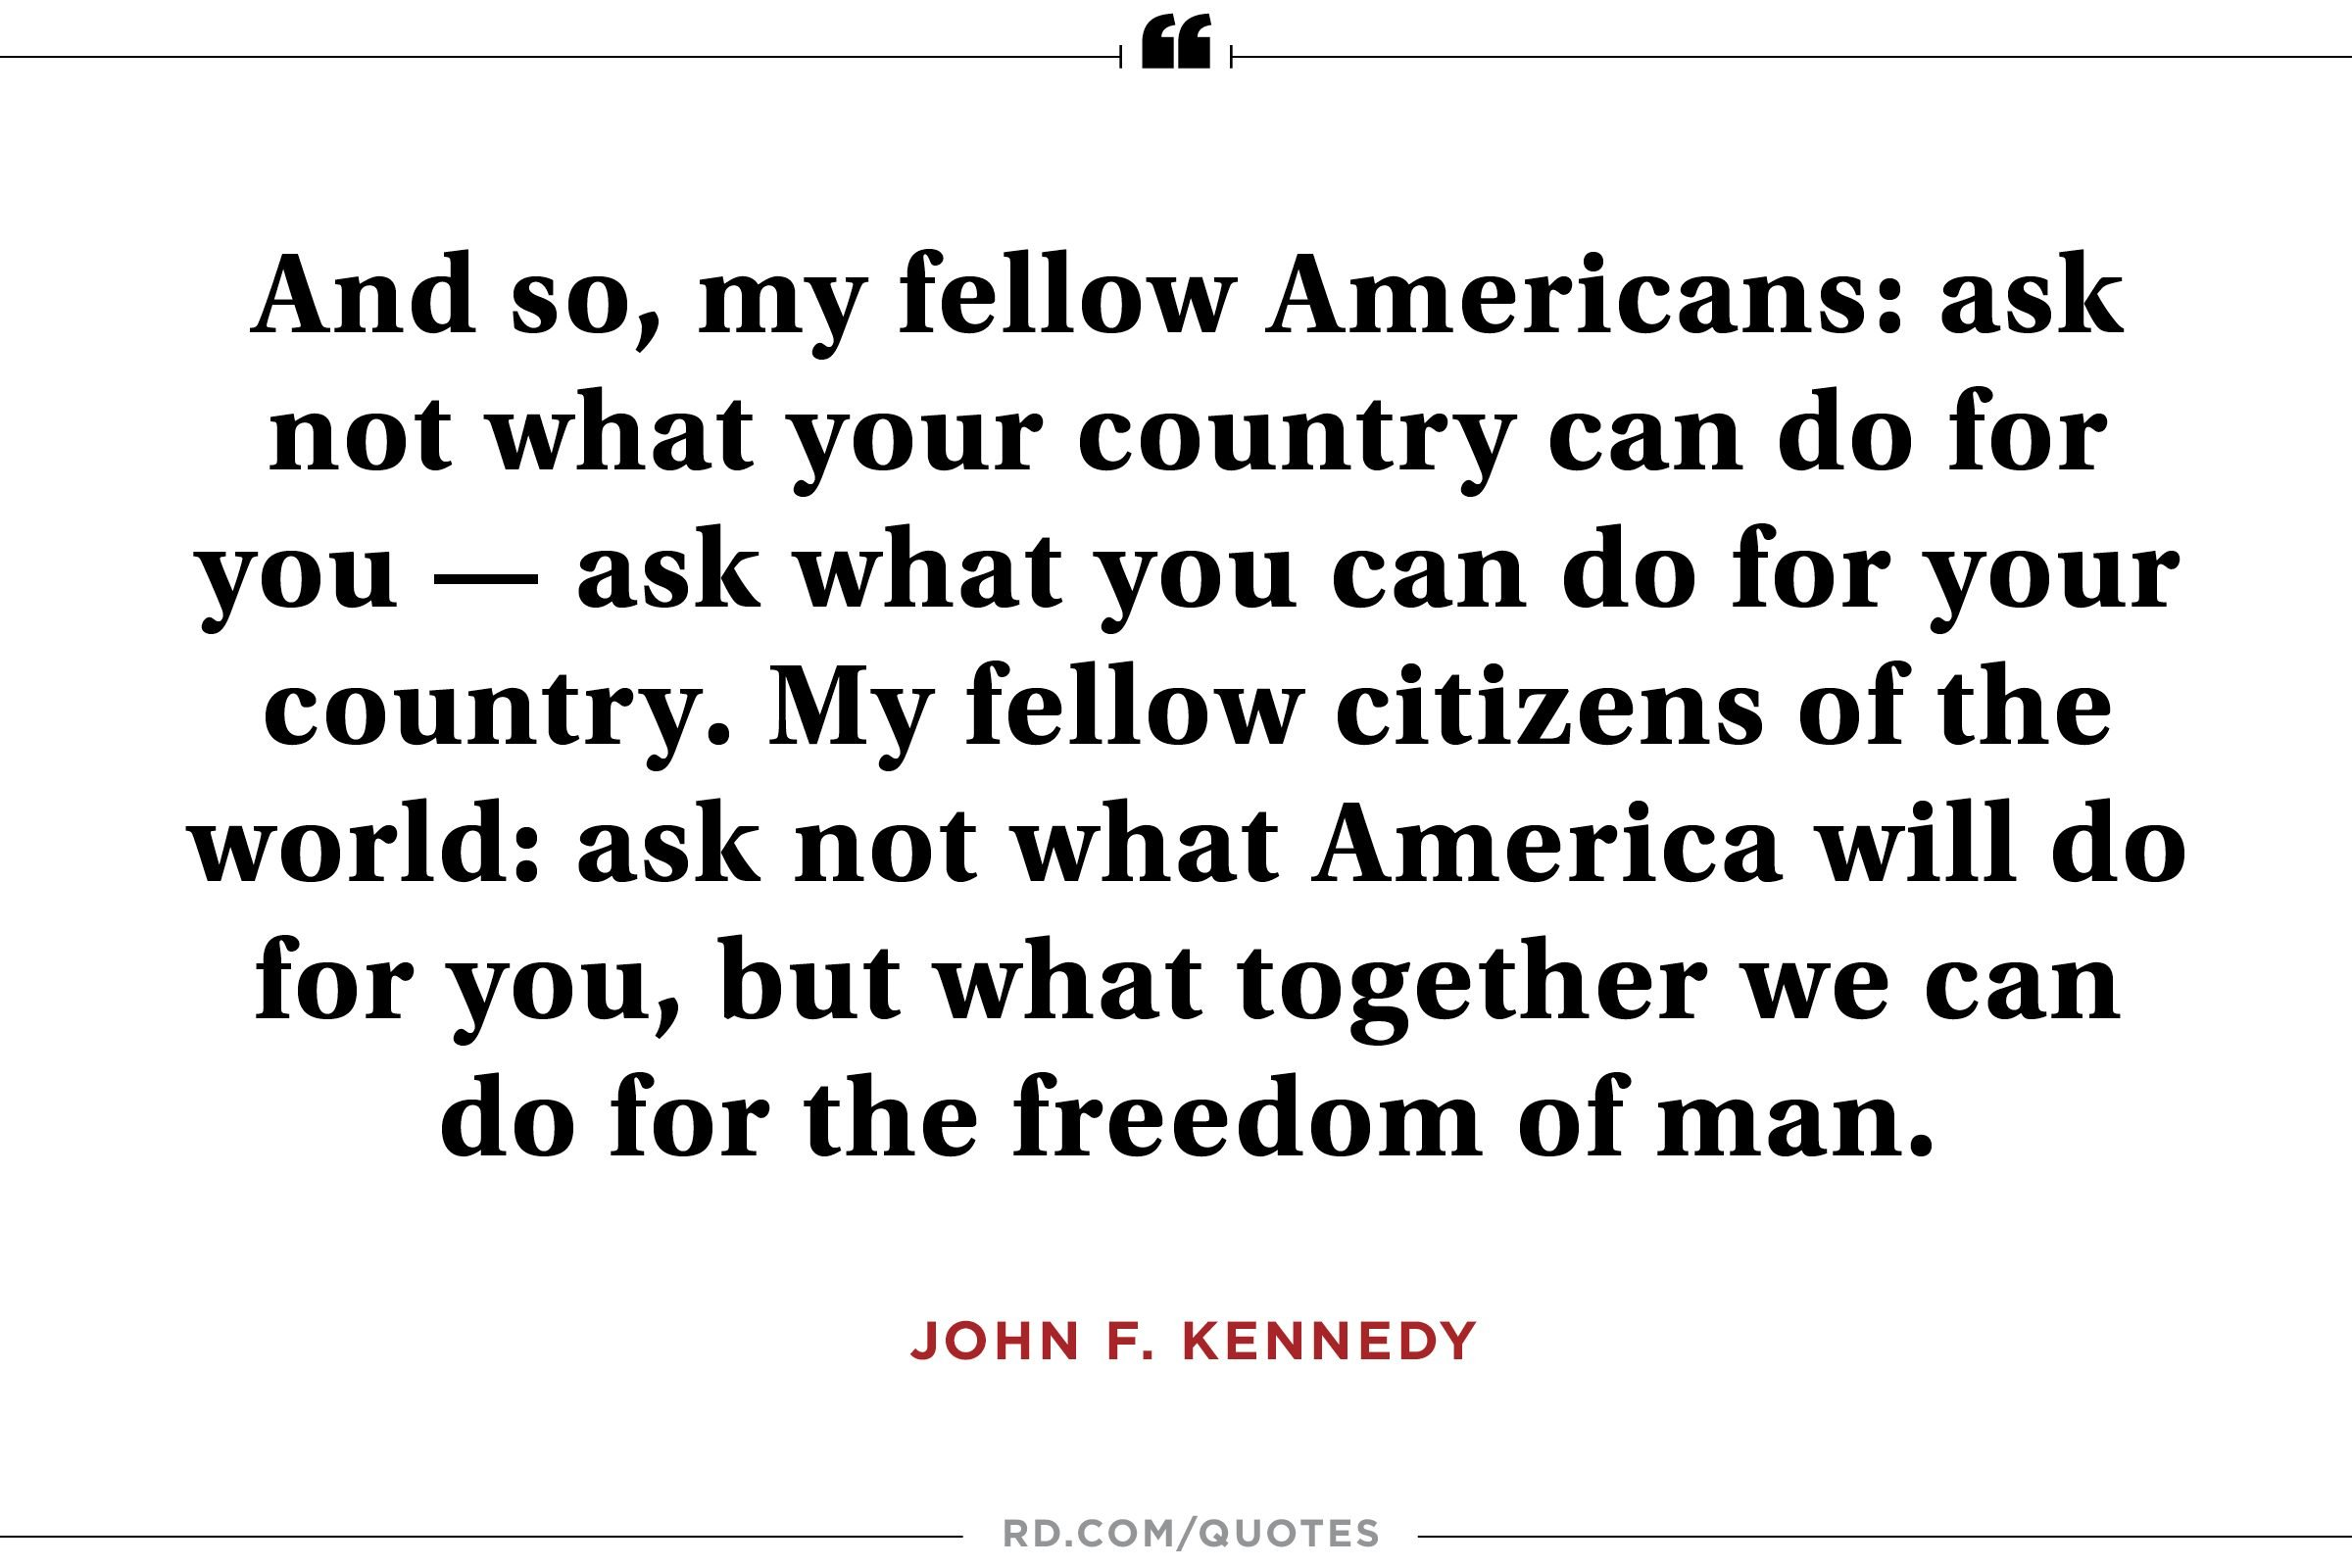 JFK on making a difference